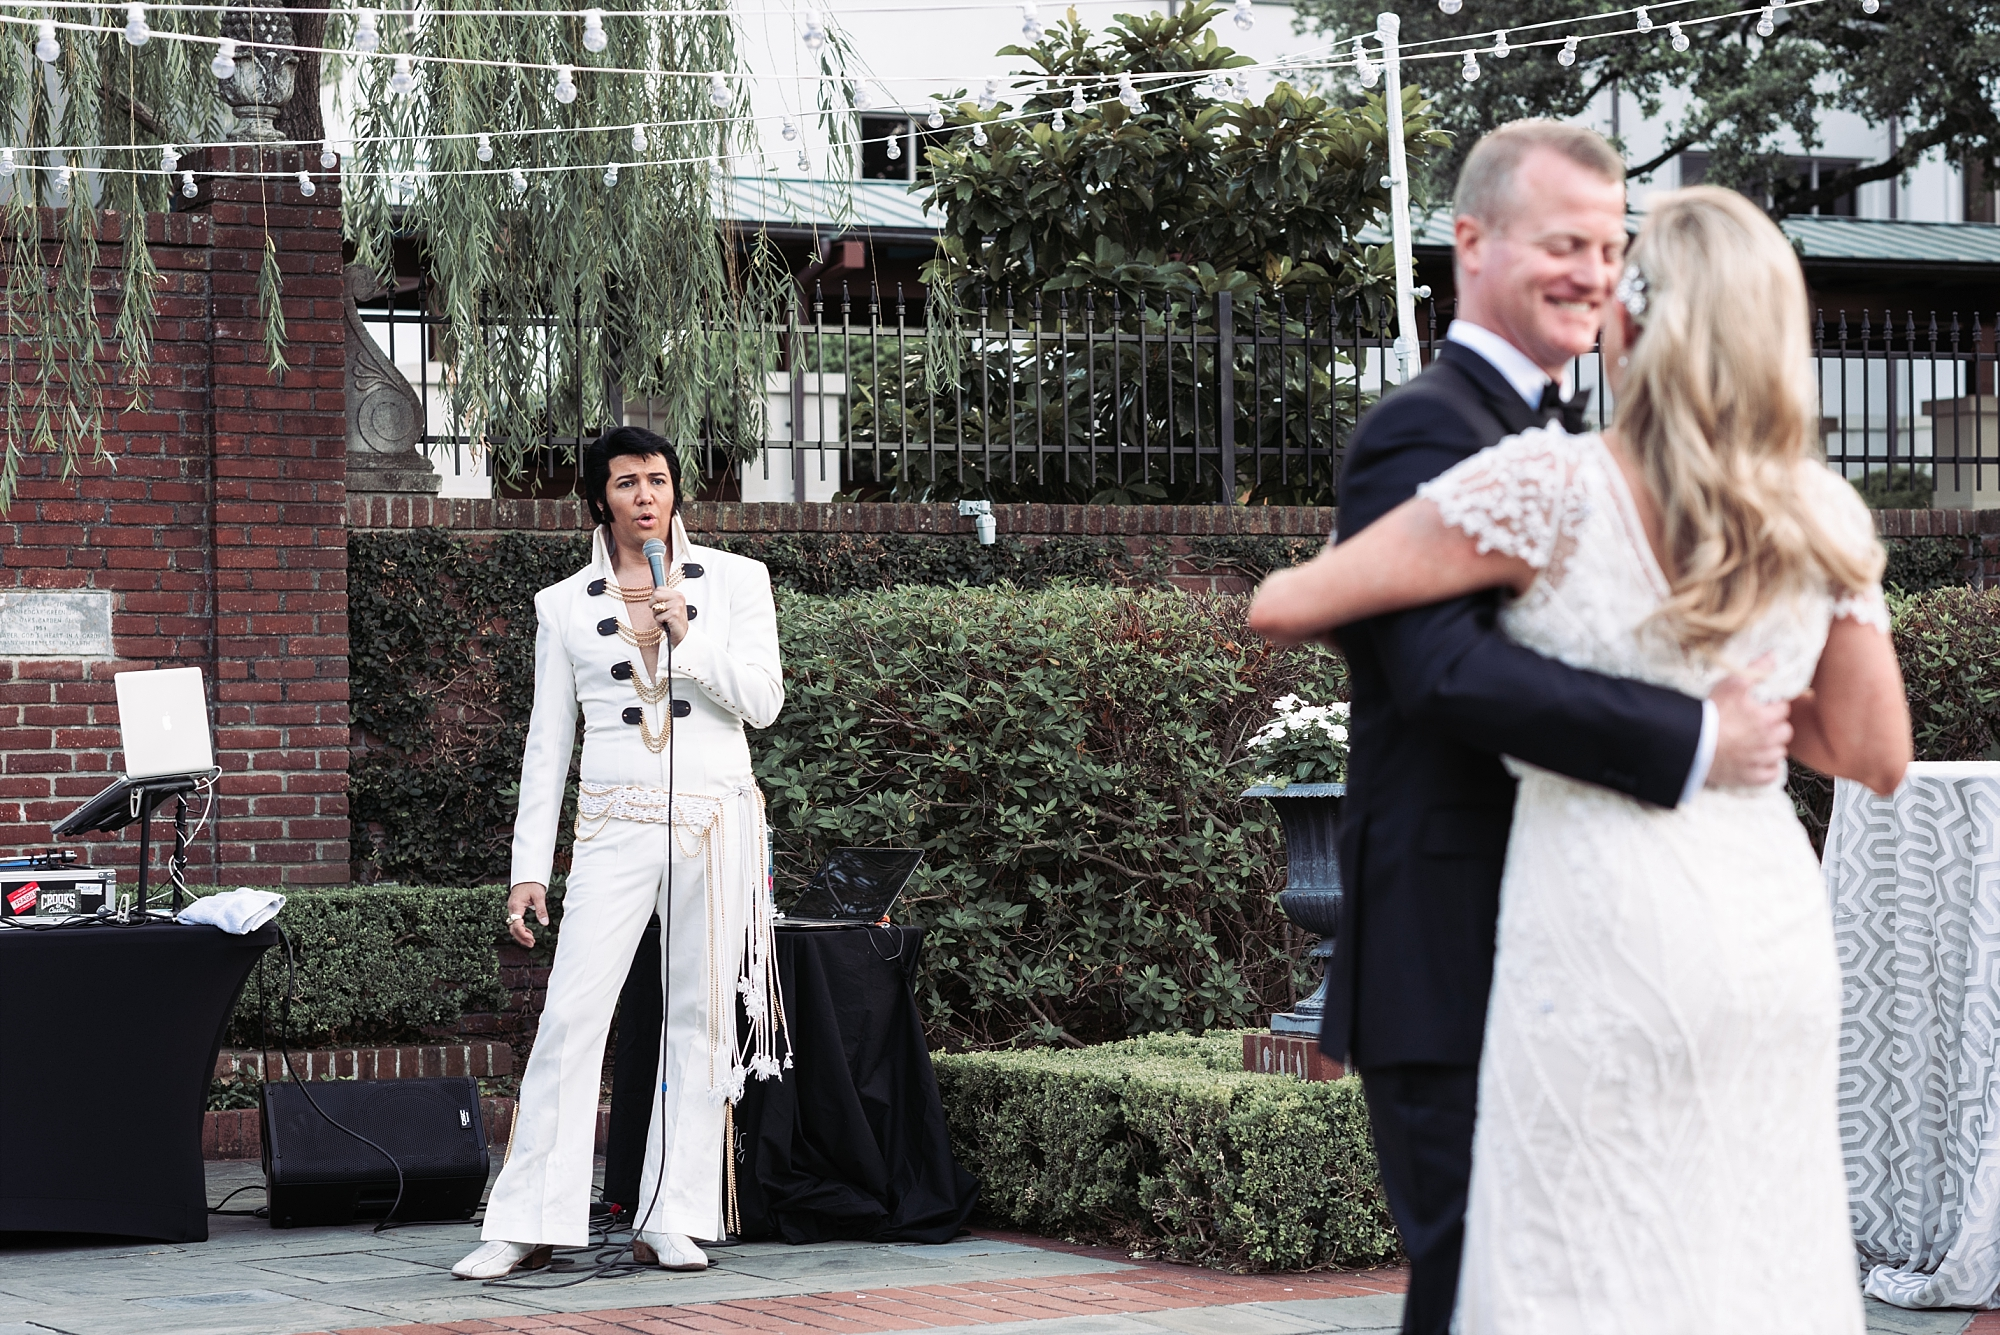 Elvis impersonator Wedding reception dance bride groom wedding portrait photography